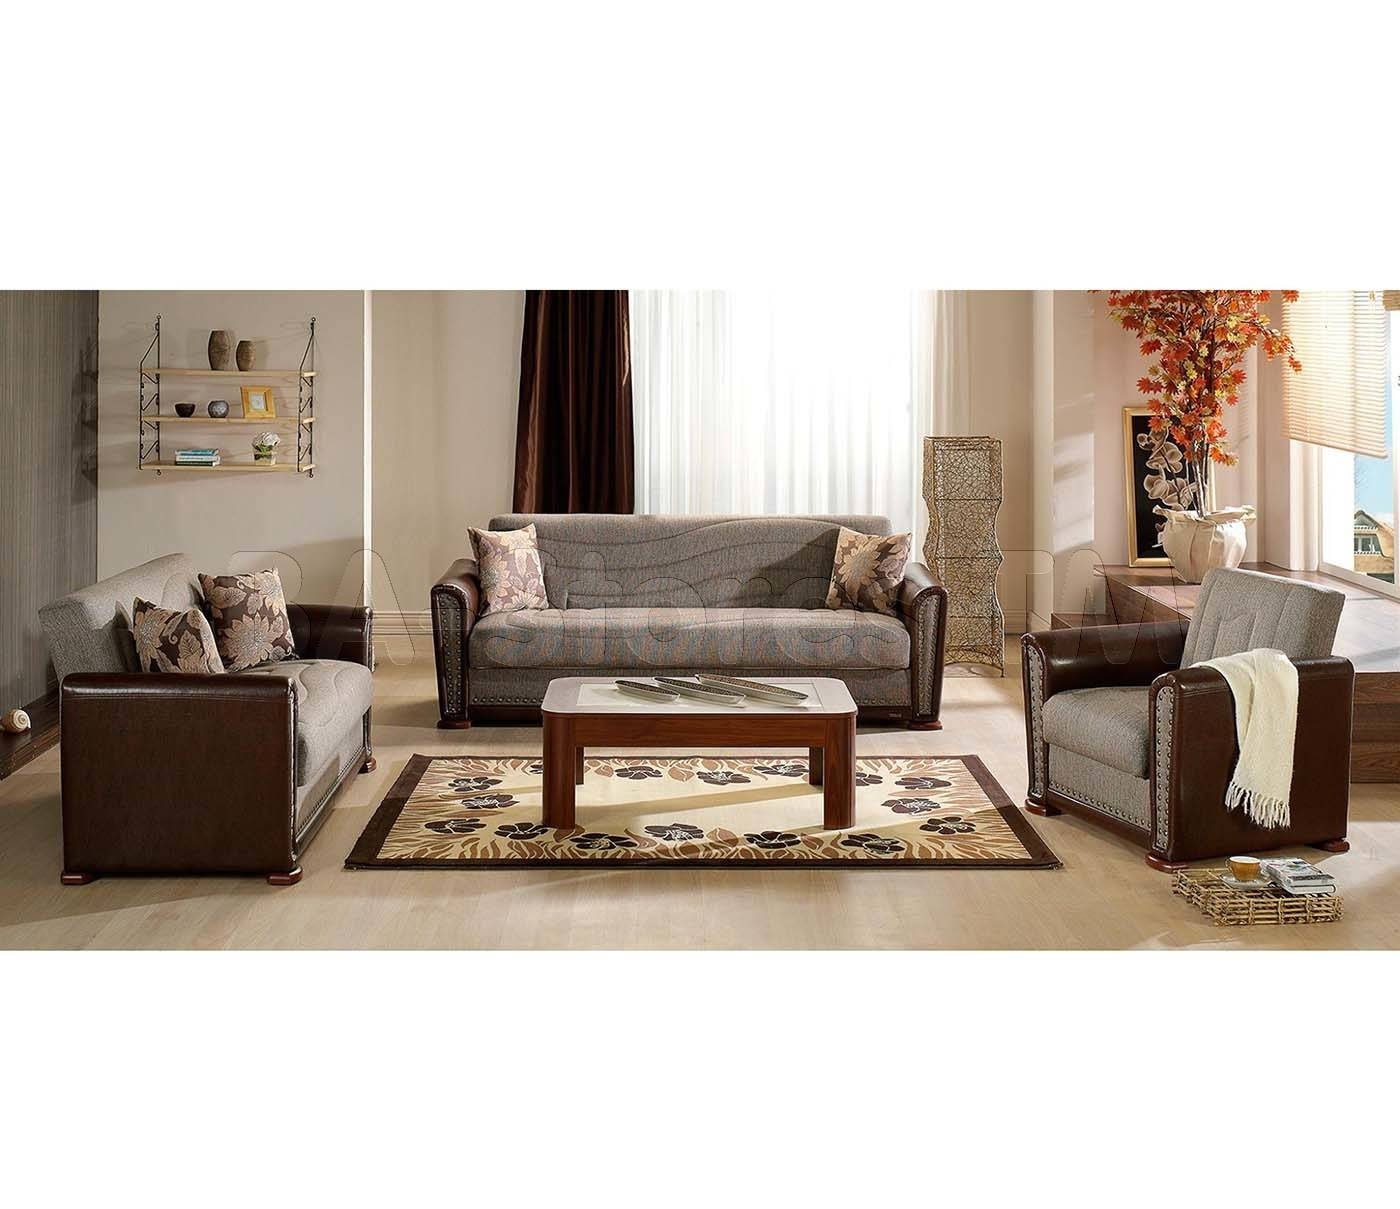 Cindy Crawford Home Sofa 33 With Cindy Crawford Home Sofa Inside Cindy Crawford Home Sofas (View 5 of 15)